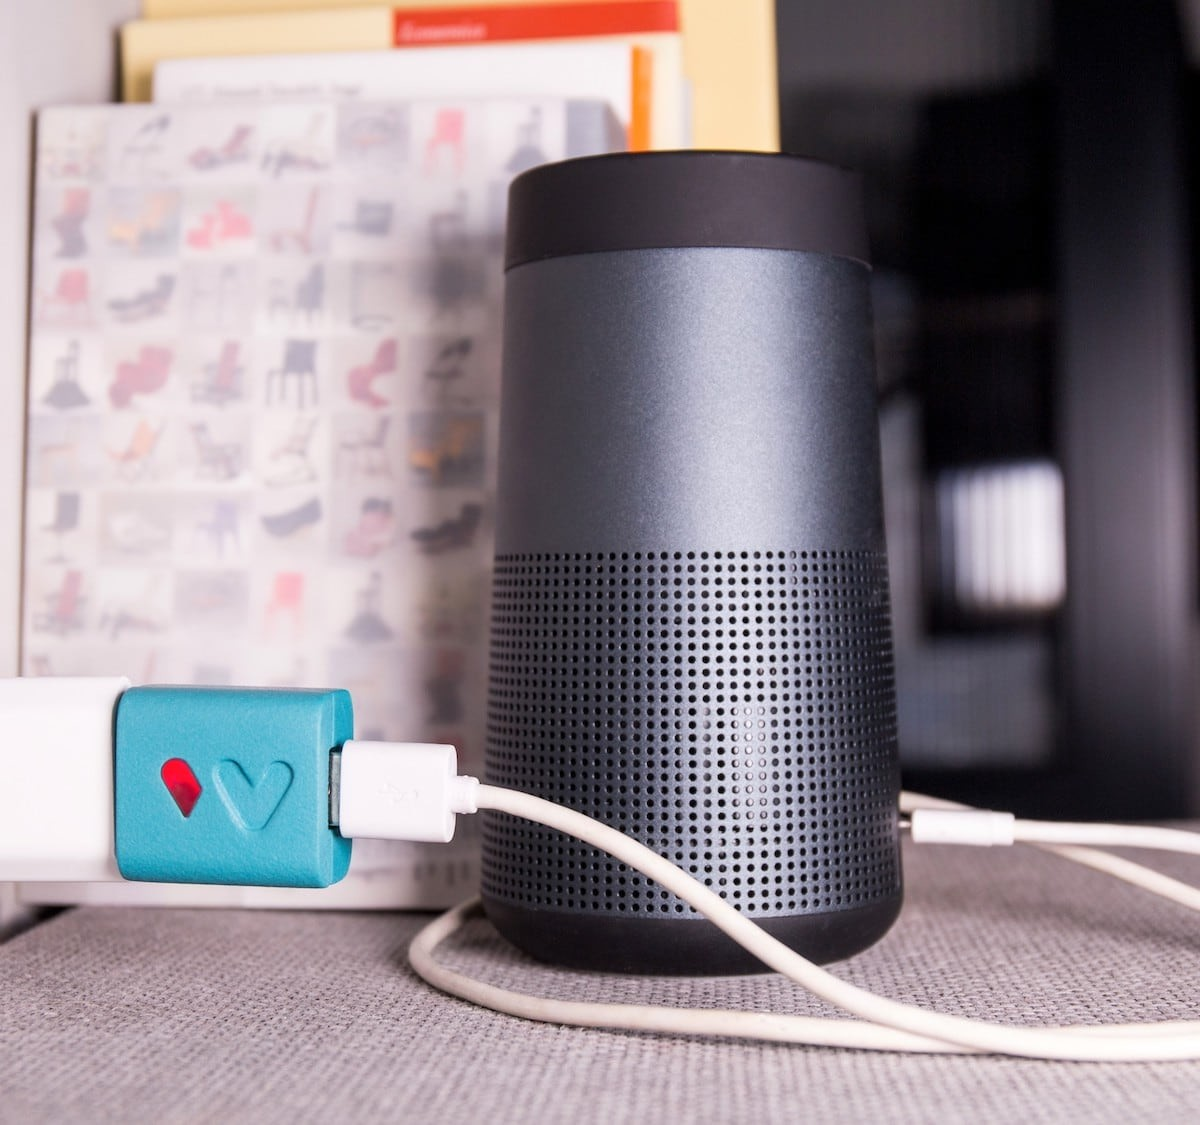 Witty USB Charger Adapter can double your phone's battery life